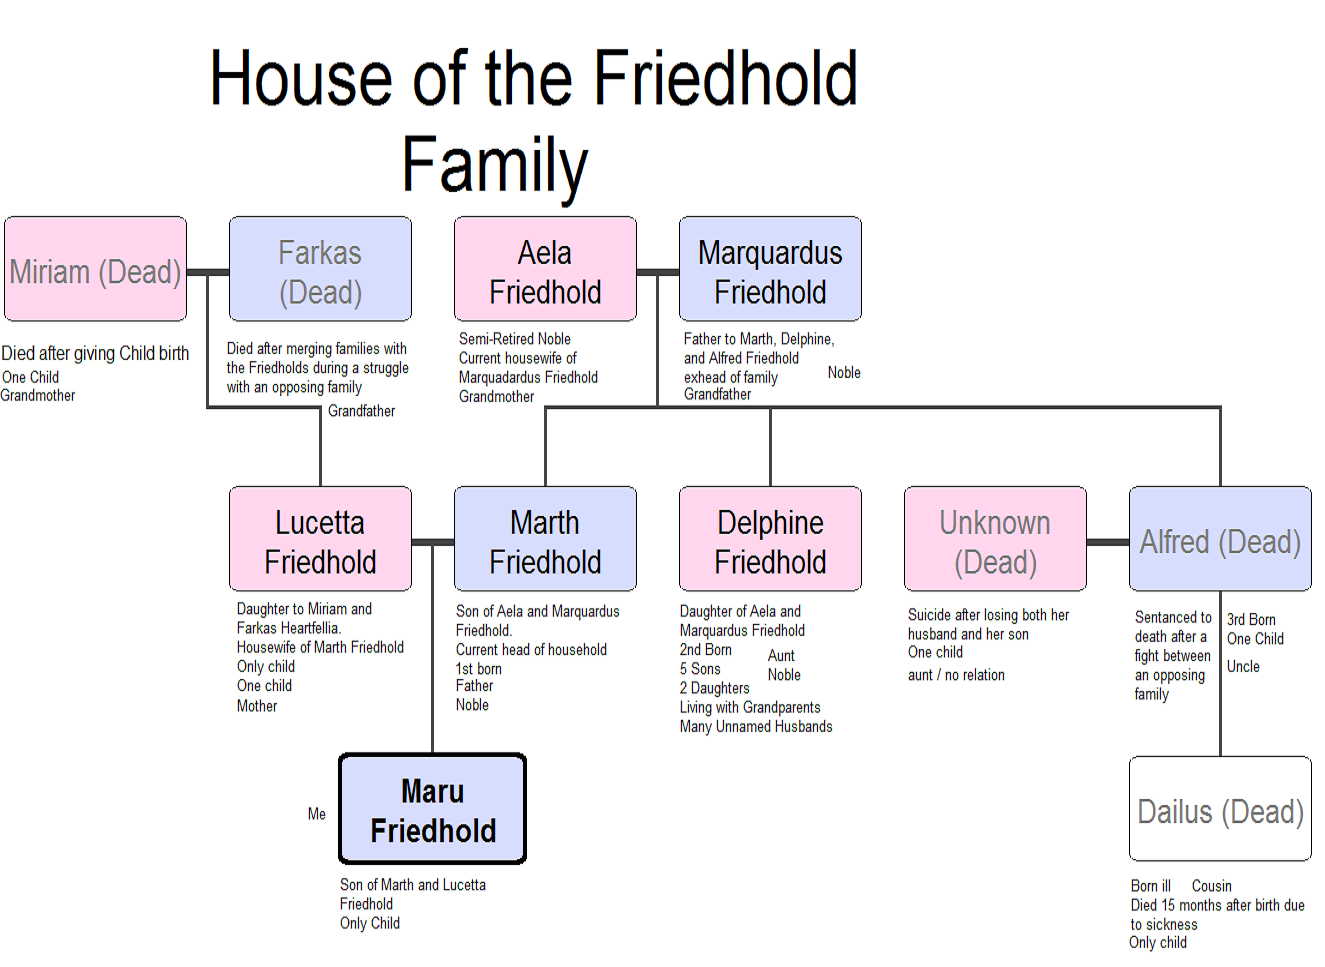 Friedhold family